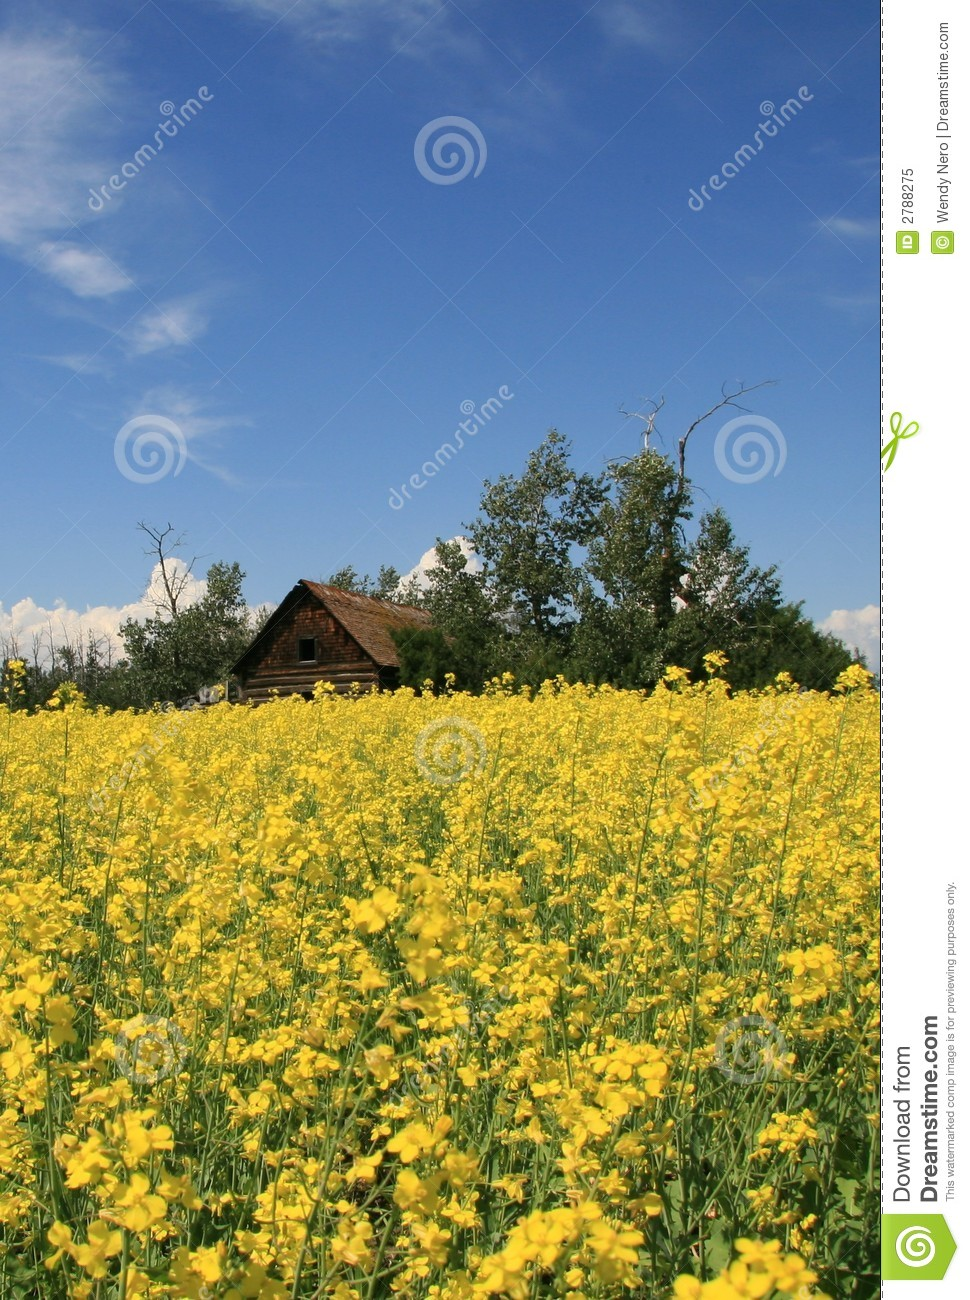 Old House in Canola Field